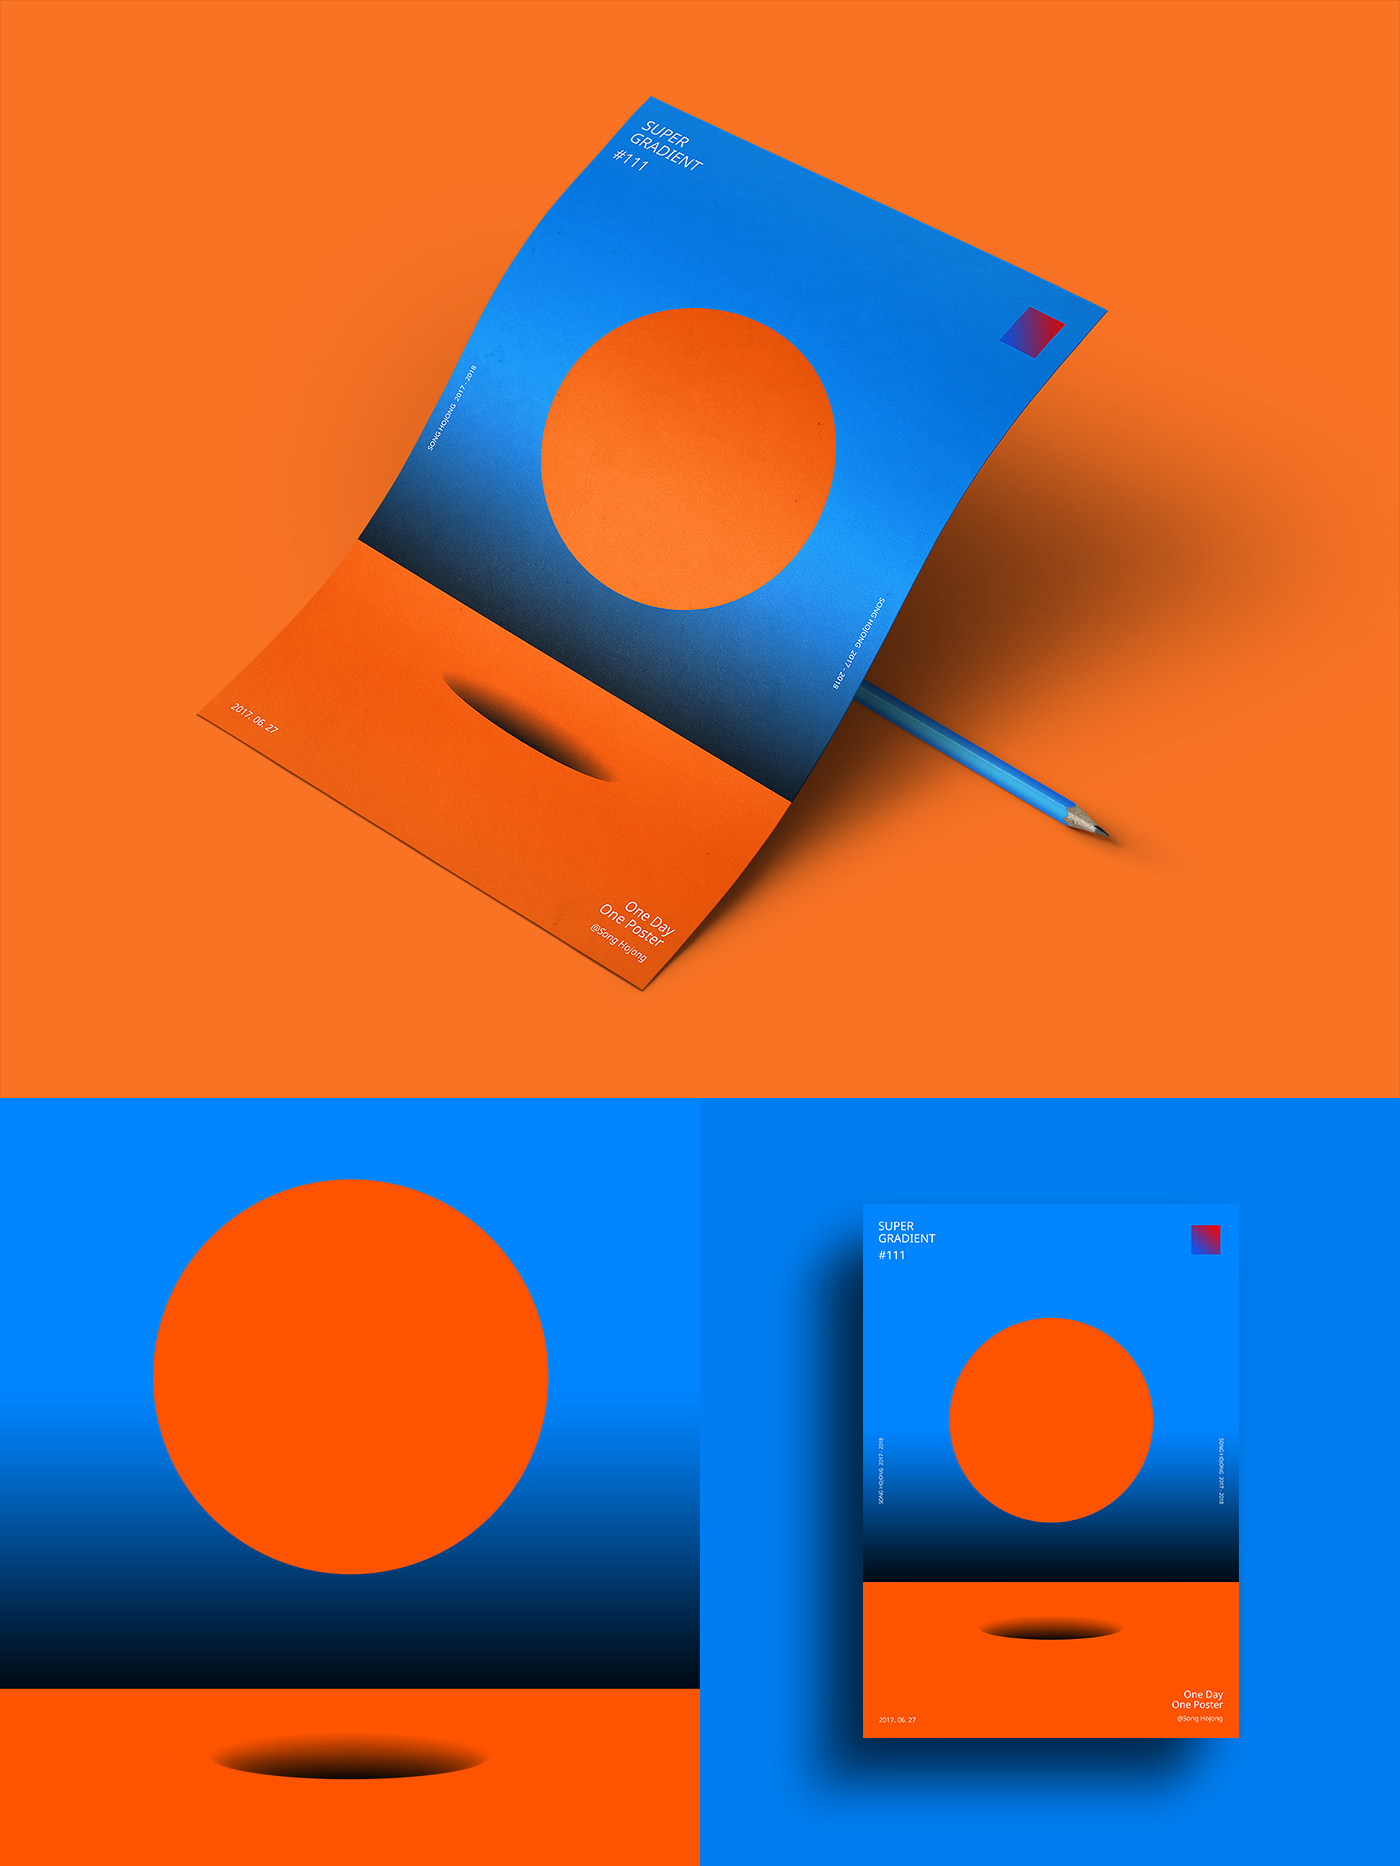 geometric light contrast abstract daily adobeawards poster gradient